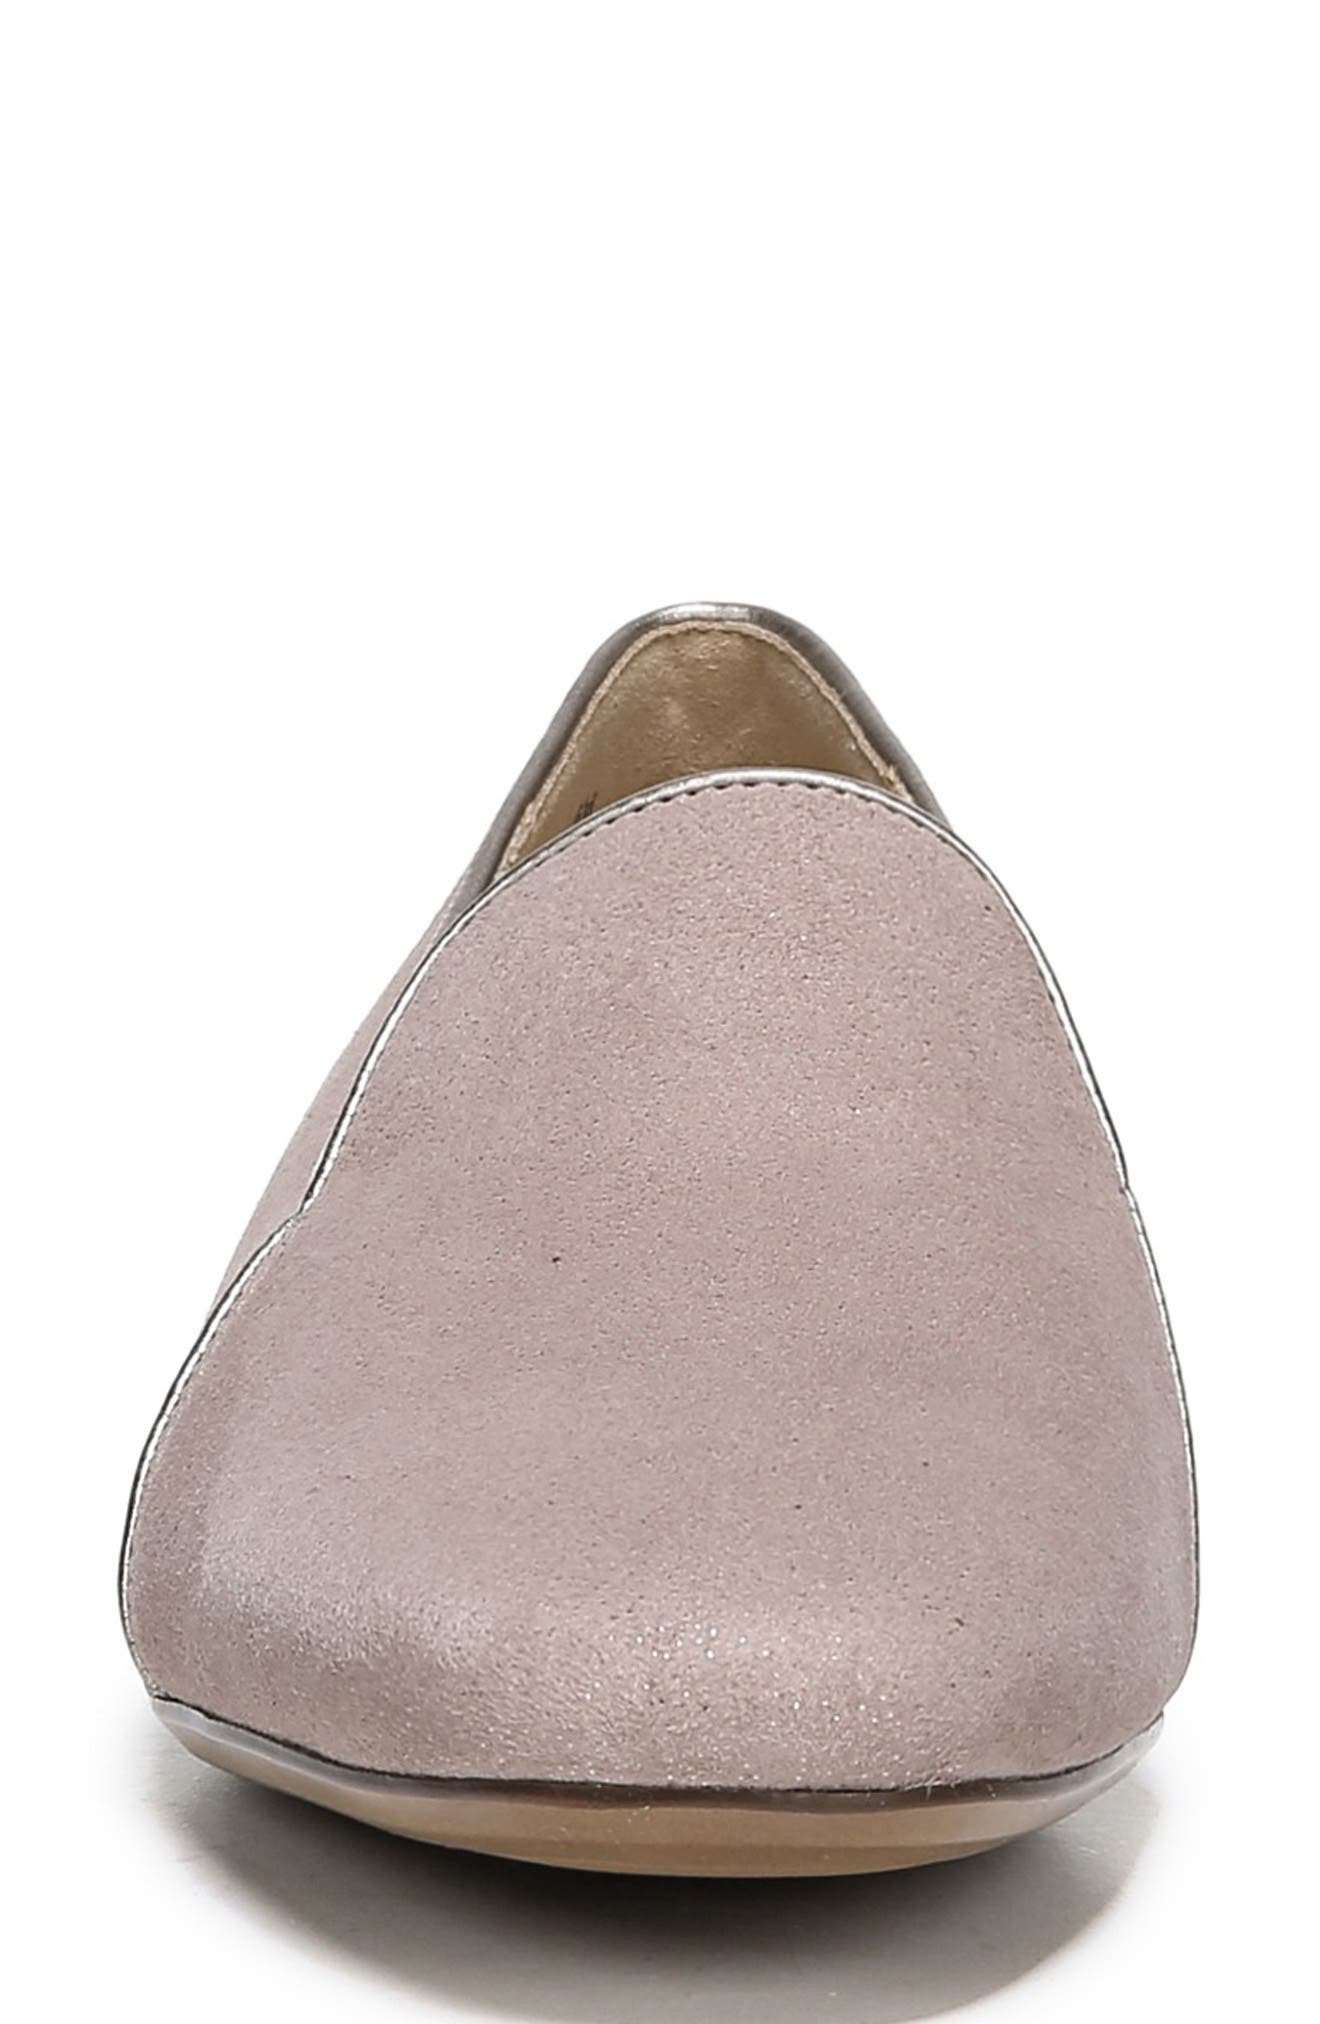 Emiline 2 Loafer,                             Alternate thumbnail 4, color,                             TAUPE GLITTER DUST SUEDE